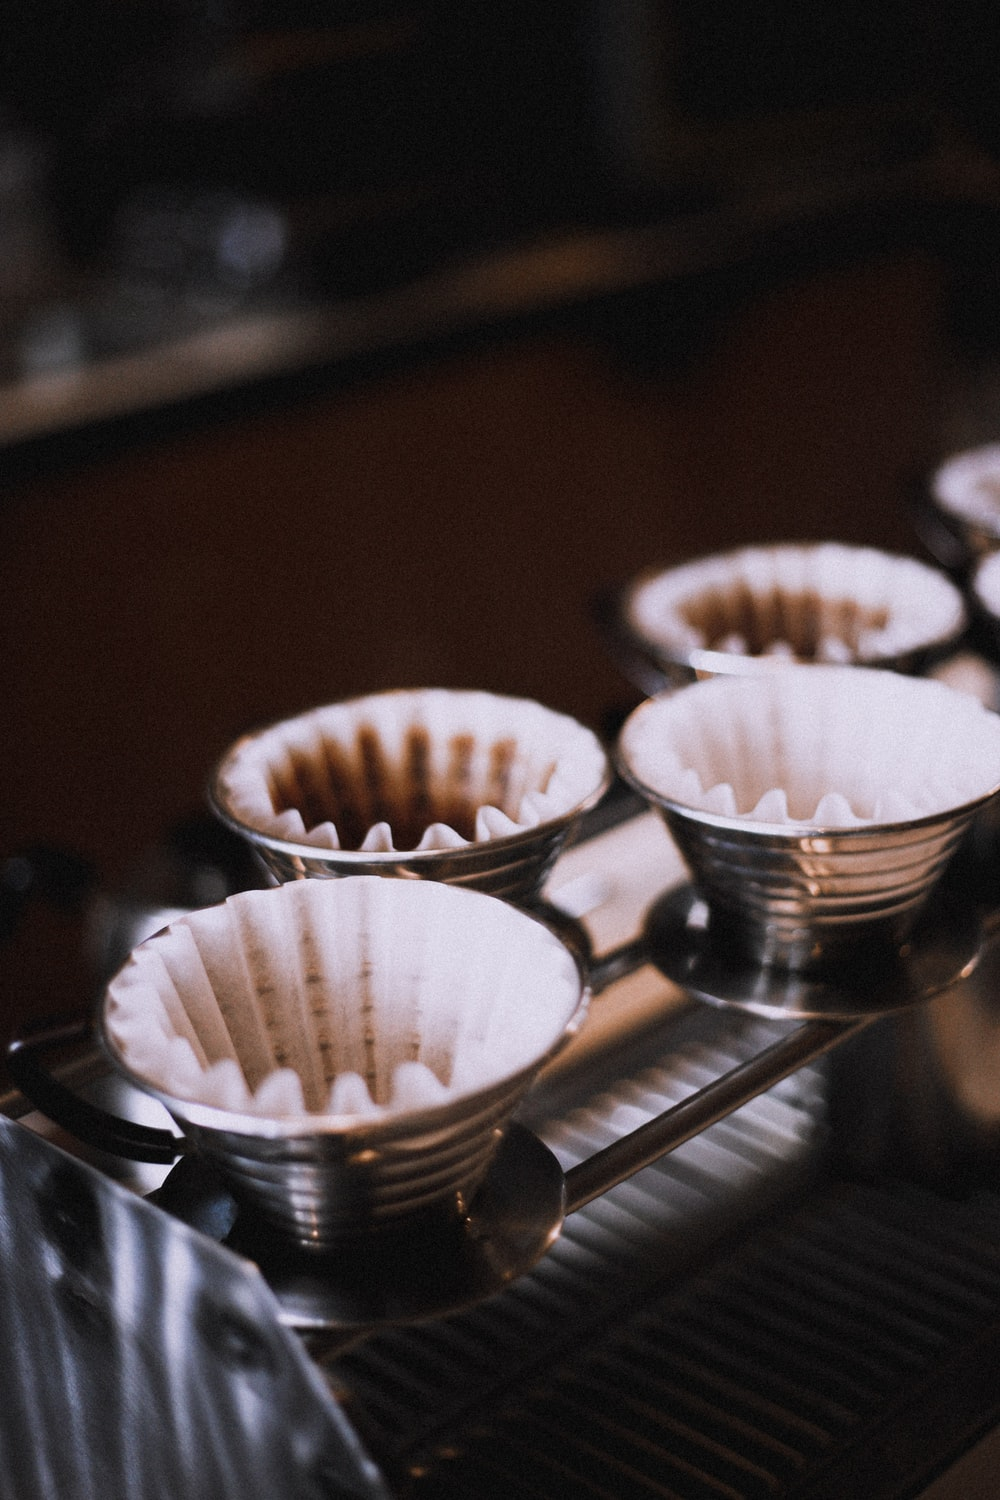 Freshly brewed coffee grounds in paper coffee filters